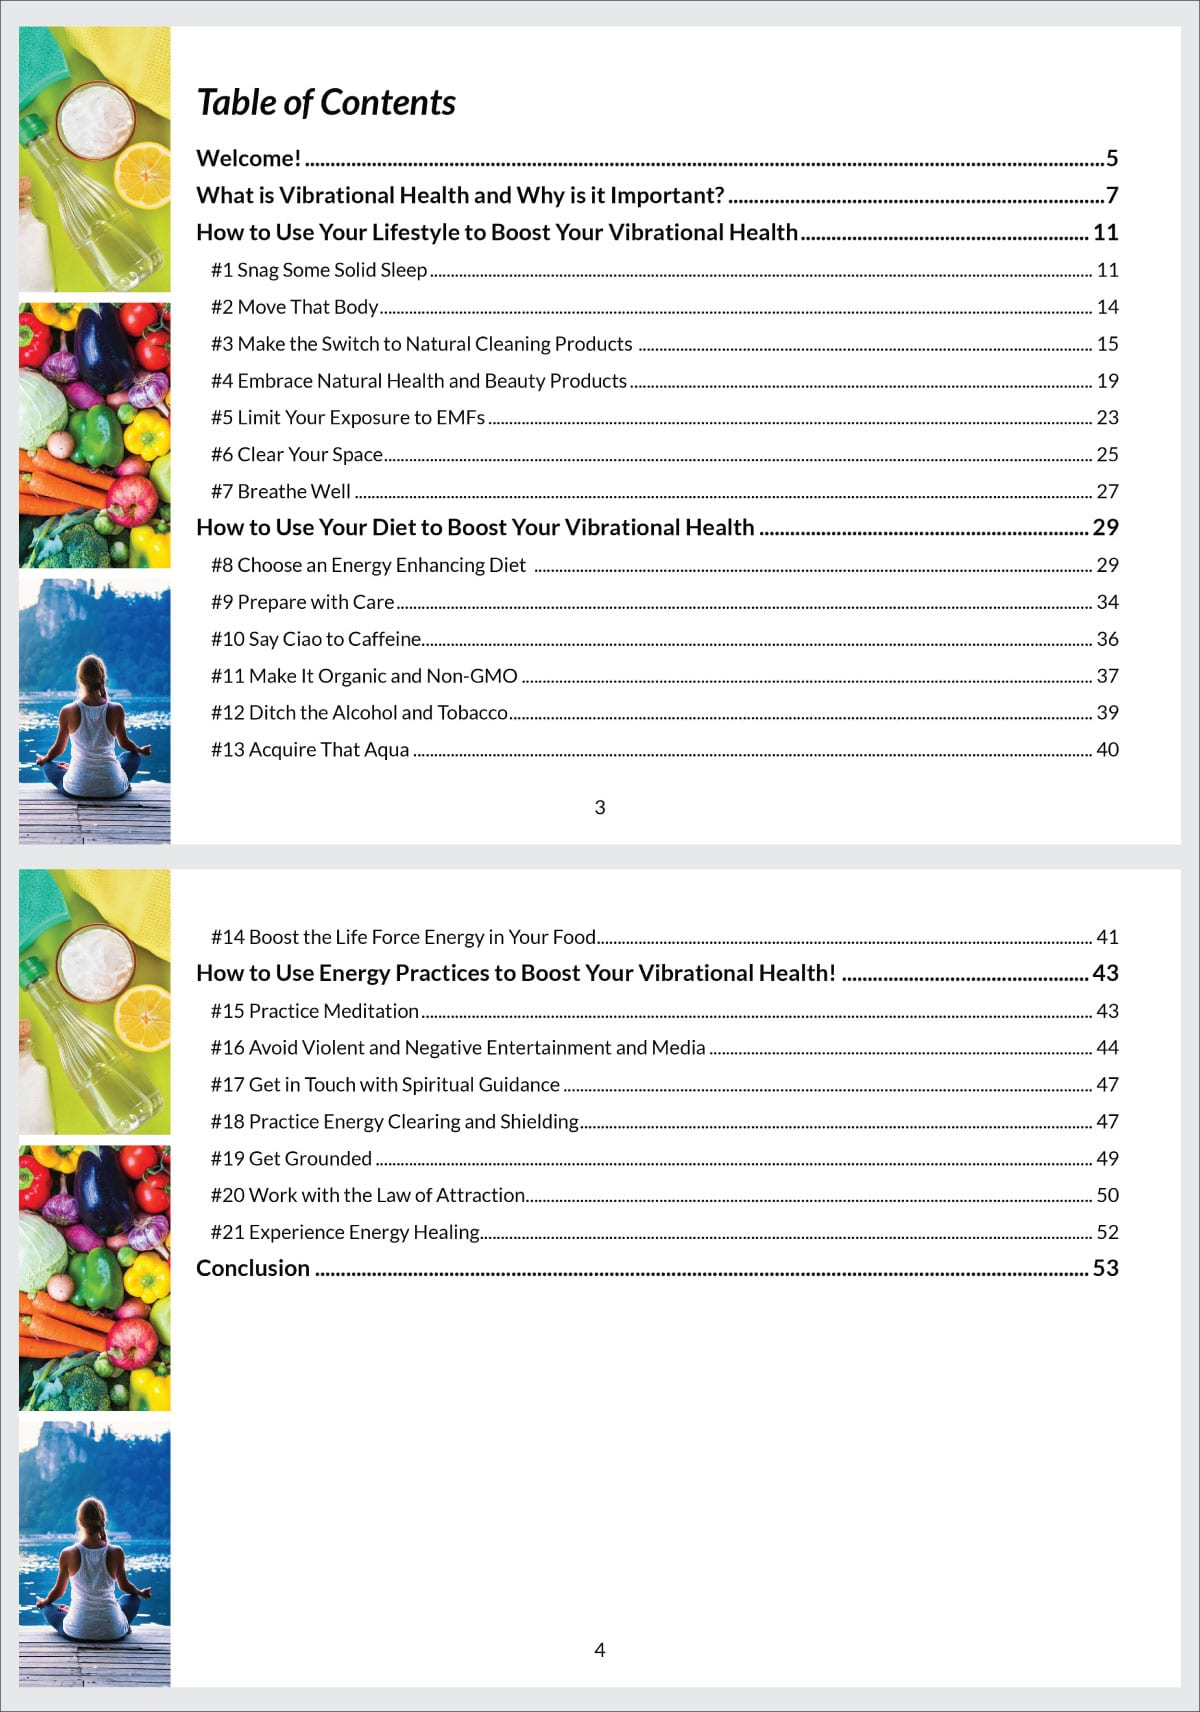 Sneak peak at the Table of Contents of the Vibrational Health Guide